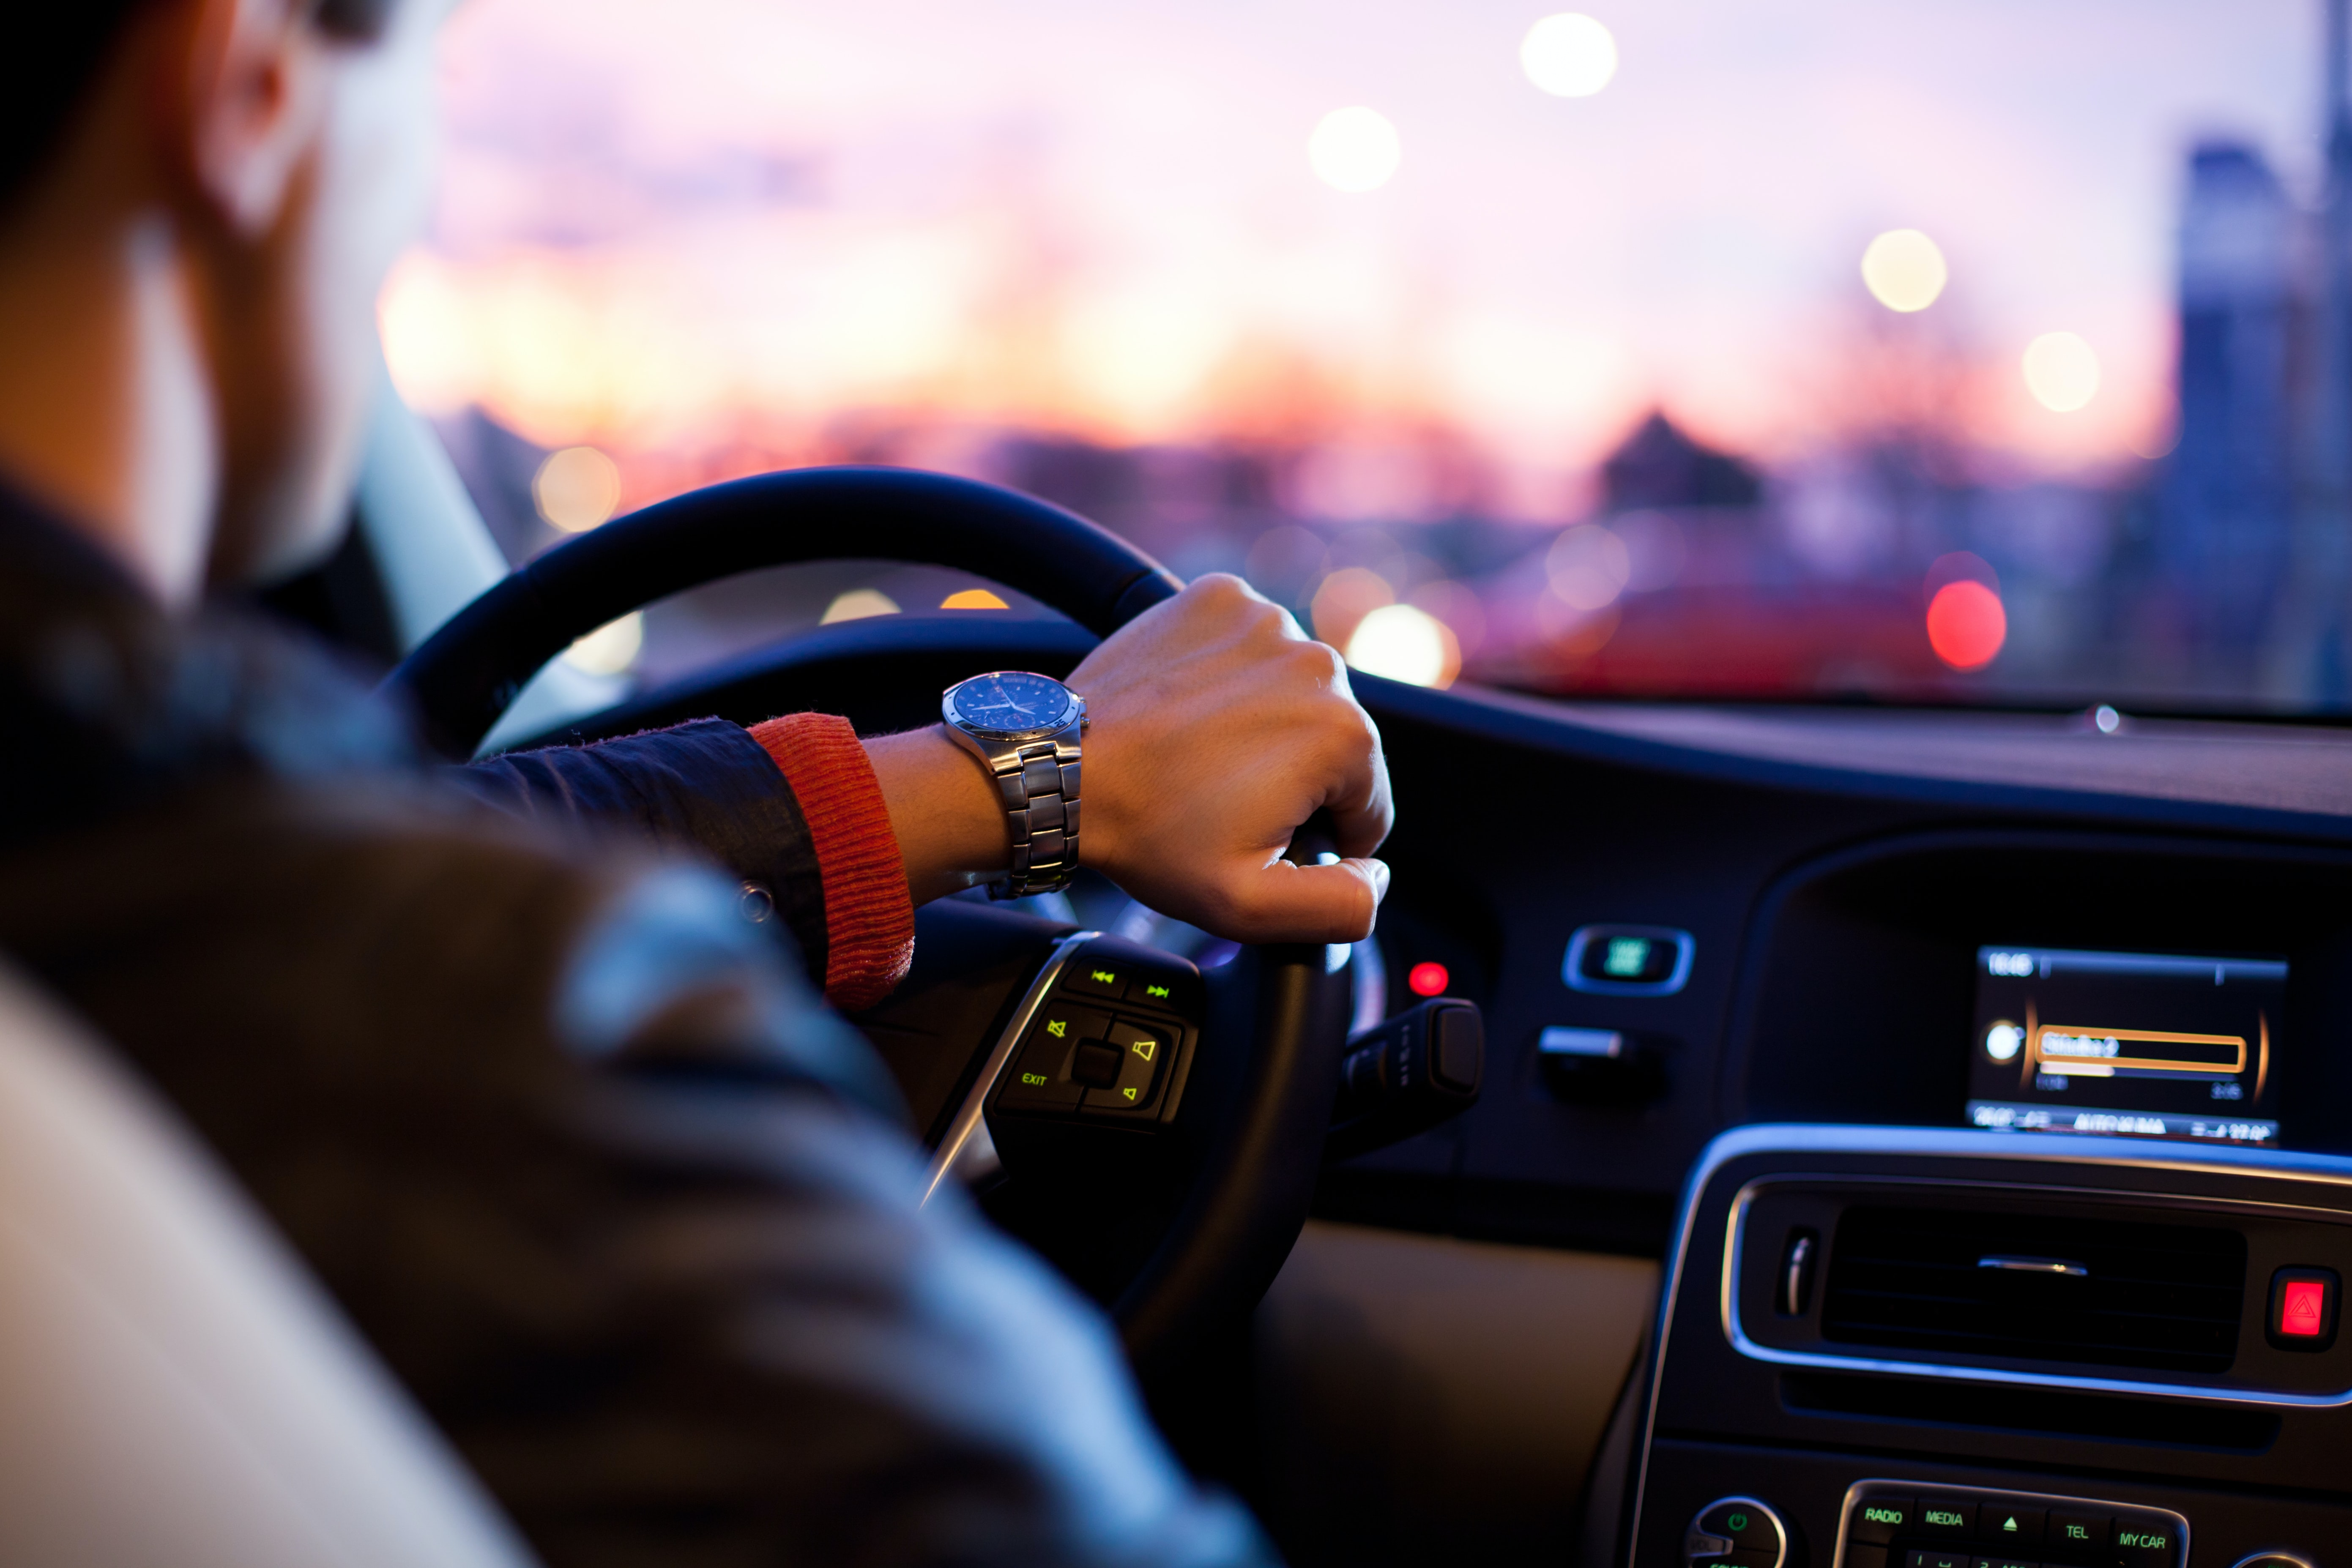 Man driving car; image by Why Kei, via Unsplash.com.